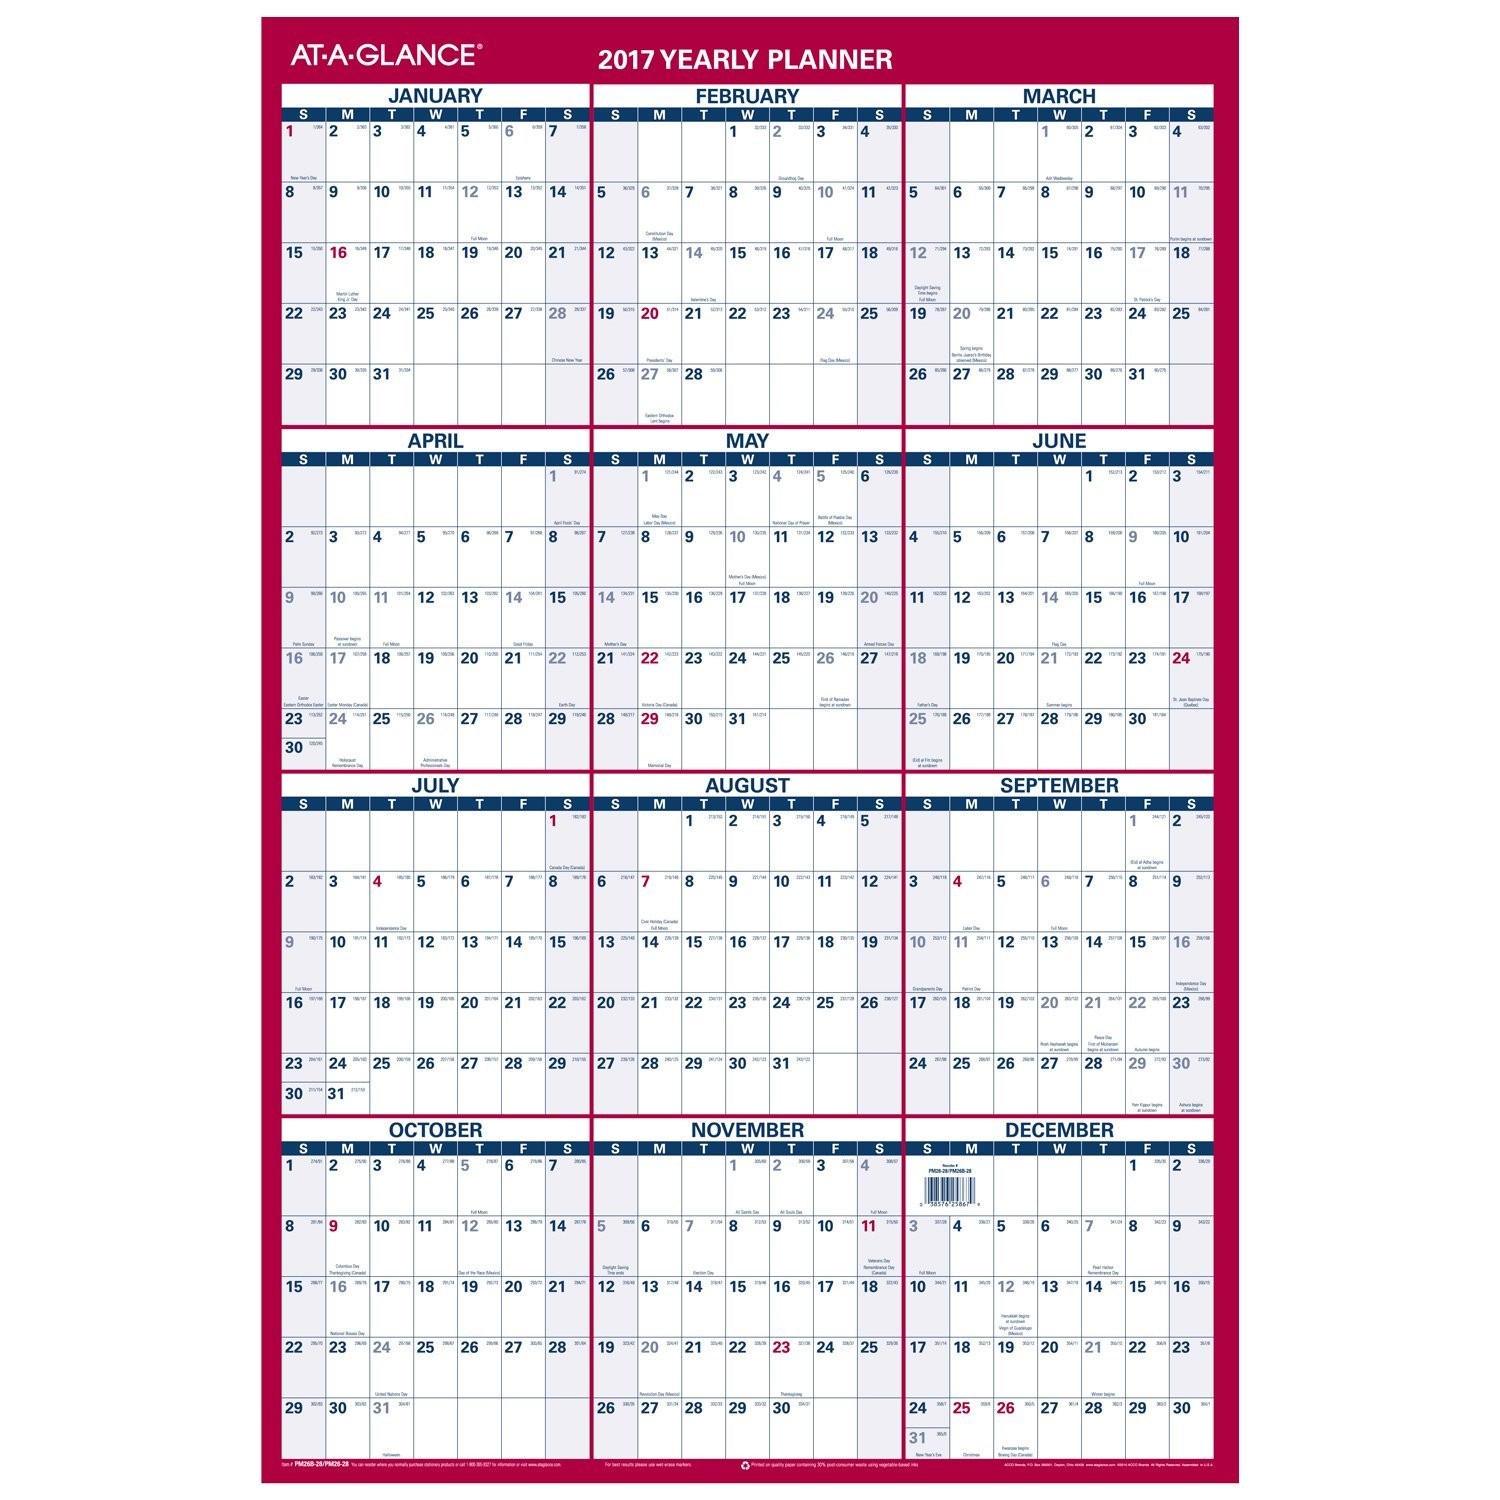 Amazon.com : AT-A-GLANCE Wall Calendar 2017, Erasable, Reversible ...